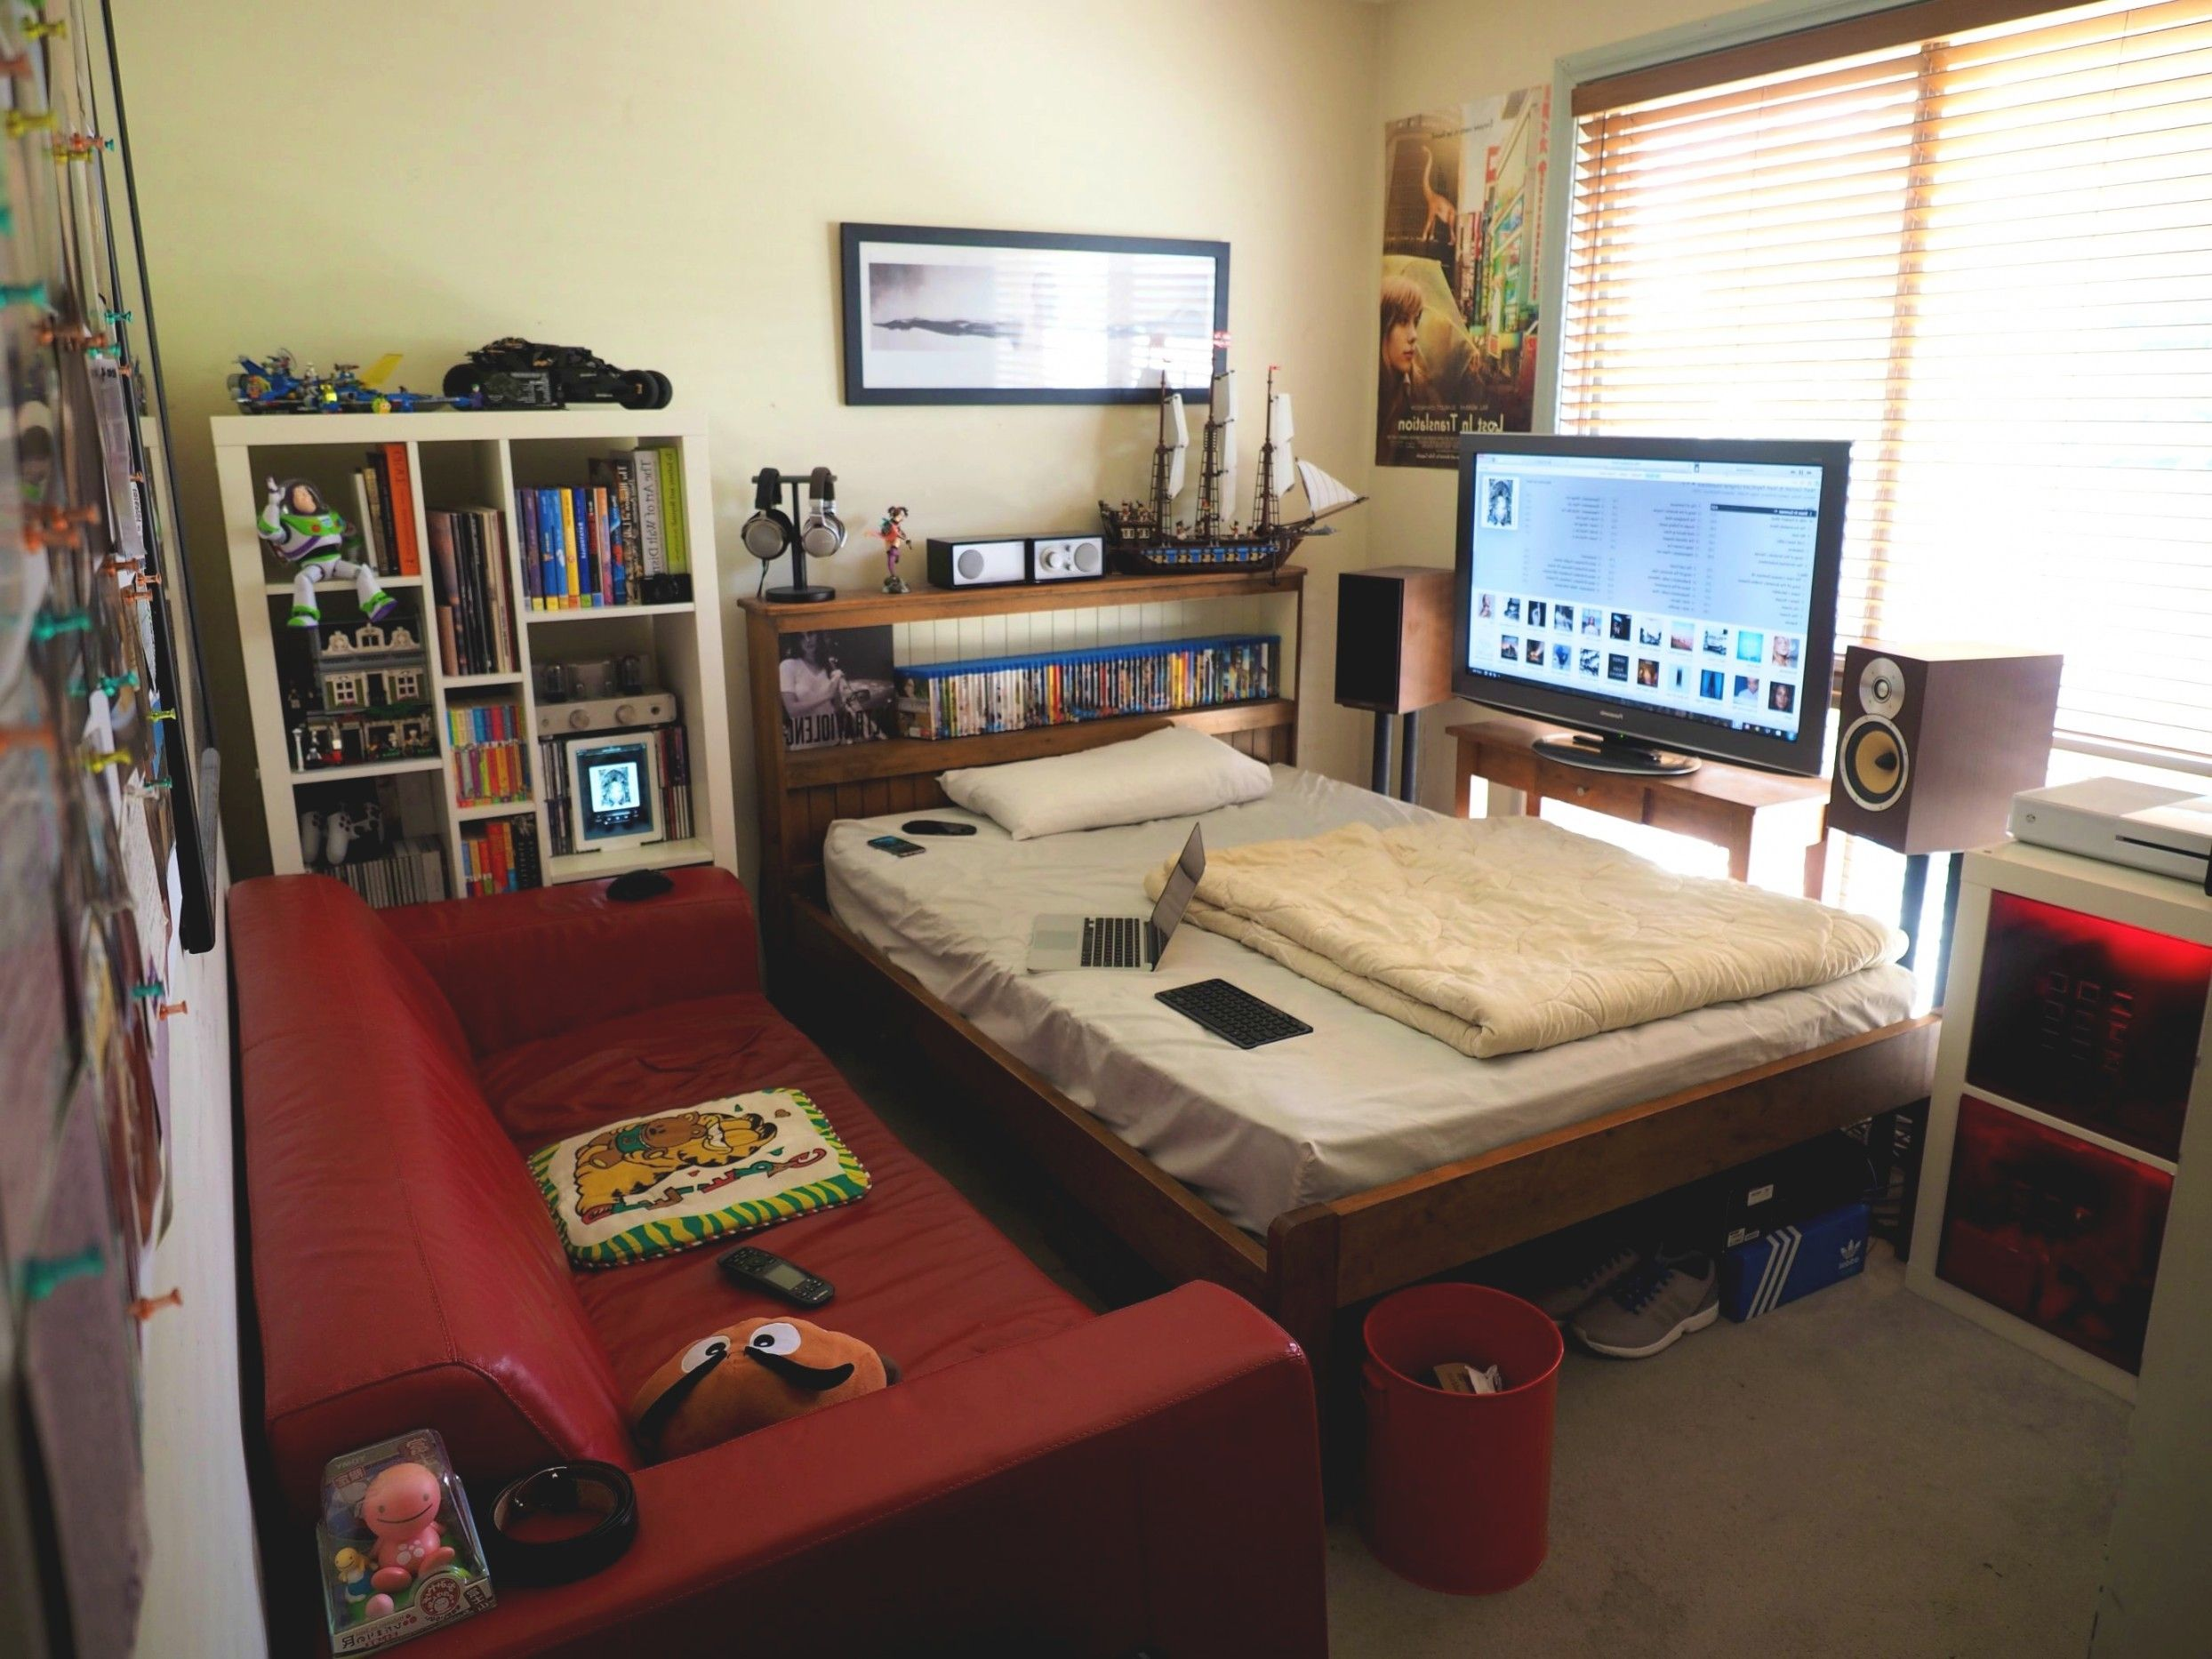 Cool bedroom setups home design ideas answersland regarding gaming bedroom setup ideas - Chambre game but ...